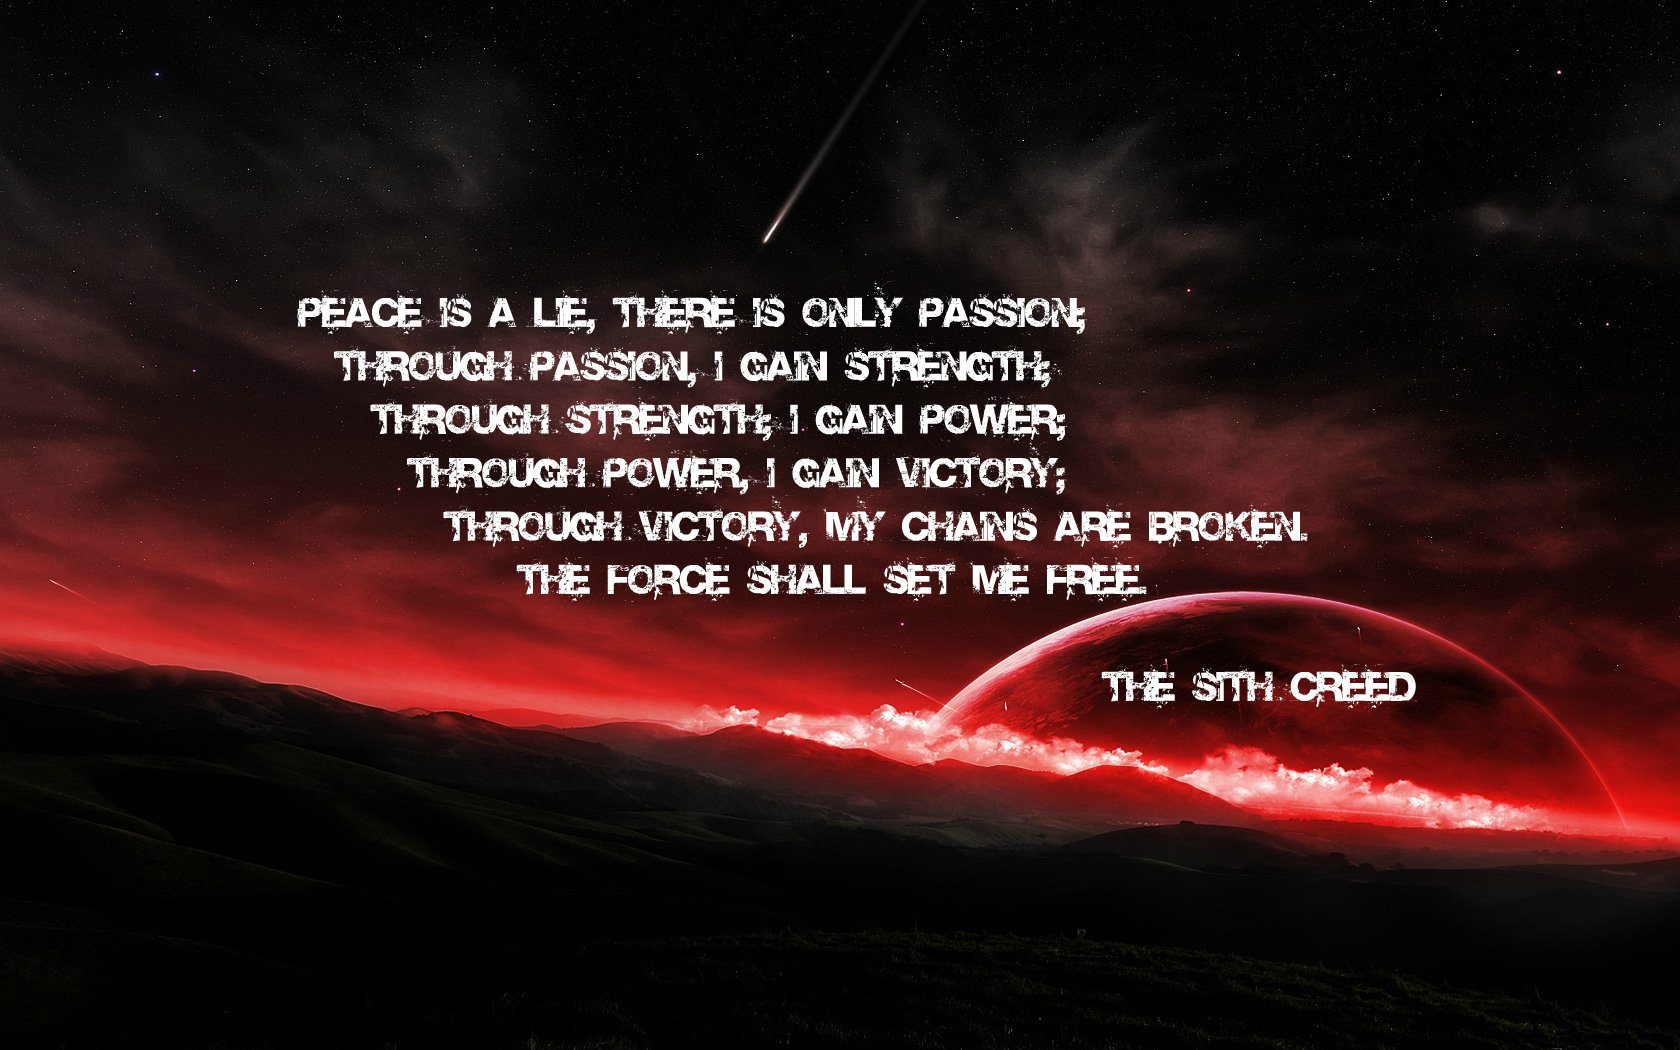 Sith creed computer wallpapers desktop backgrounds - Star wars quotes wallpaper ...